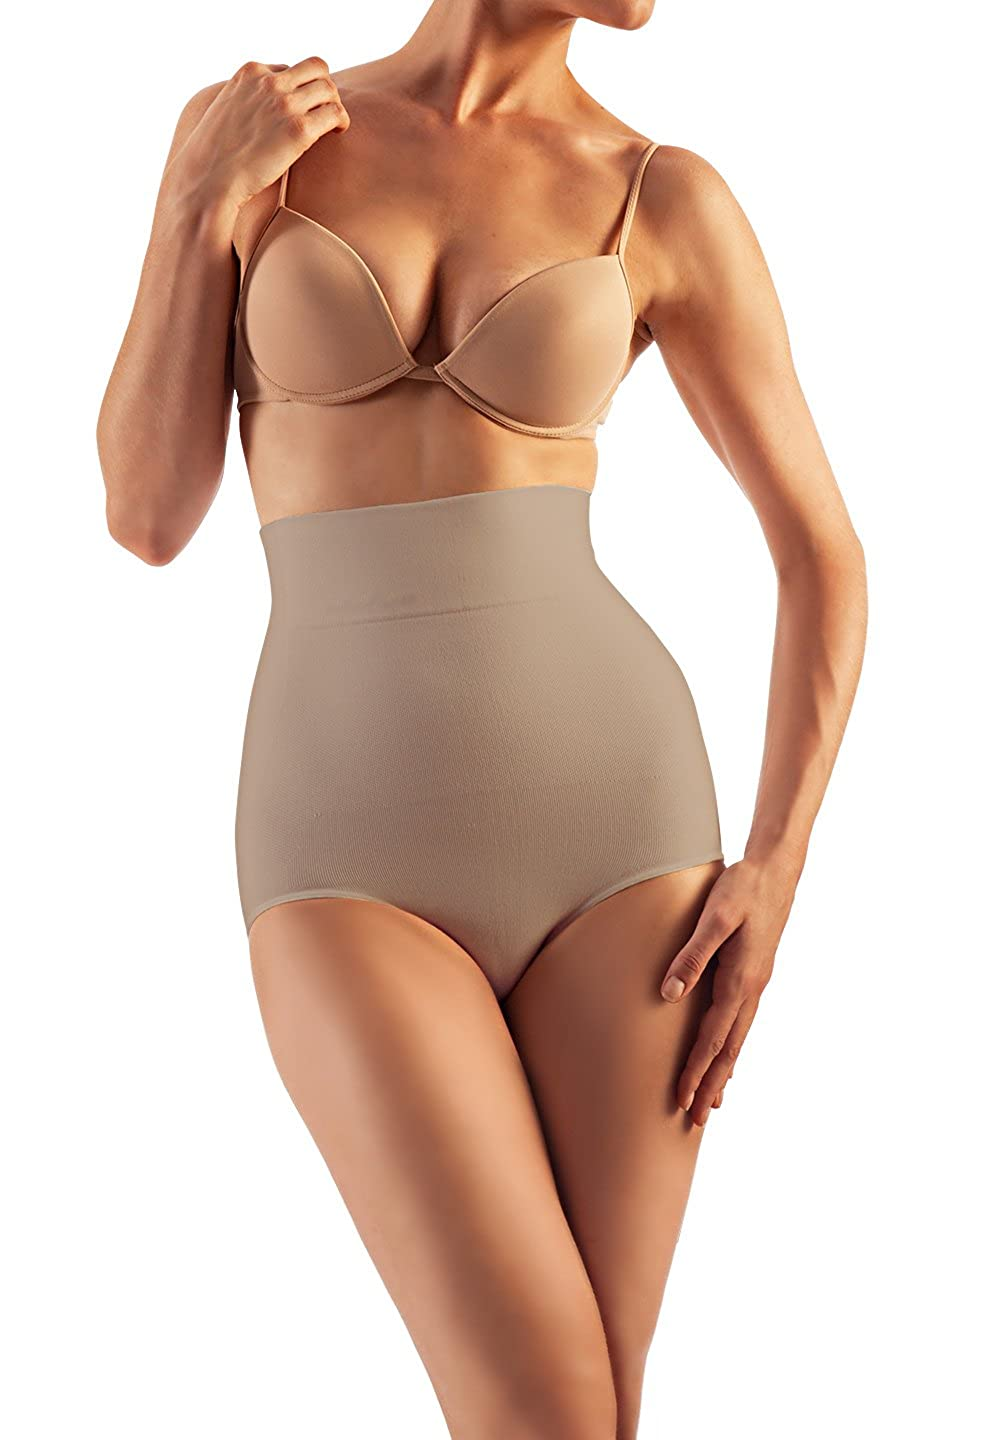 Farmacell Shape Cotton 611 (Nude, L) High-Waisted Shaping Control Briefs Belly Control Effect Calze G.T. S.r.l. SLVACMODCFC/CONF_0240054